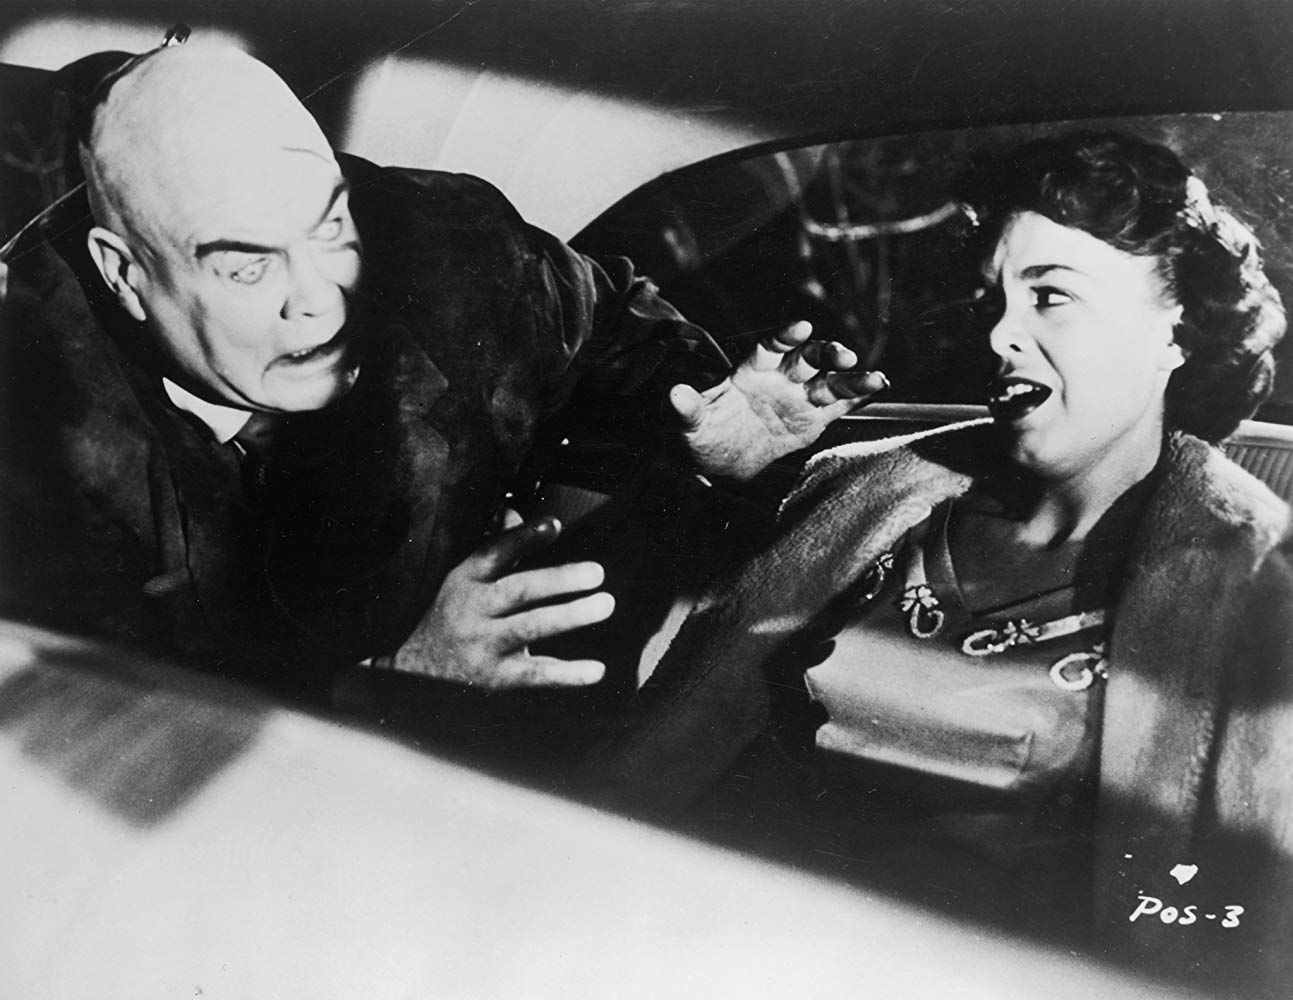 The zombified Tor Johnson advances on Mona McKinnon in Plan 9 from Outer Space (1959)